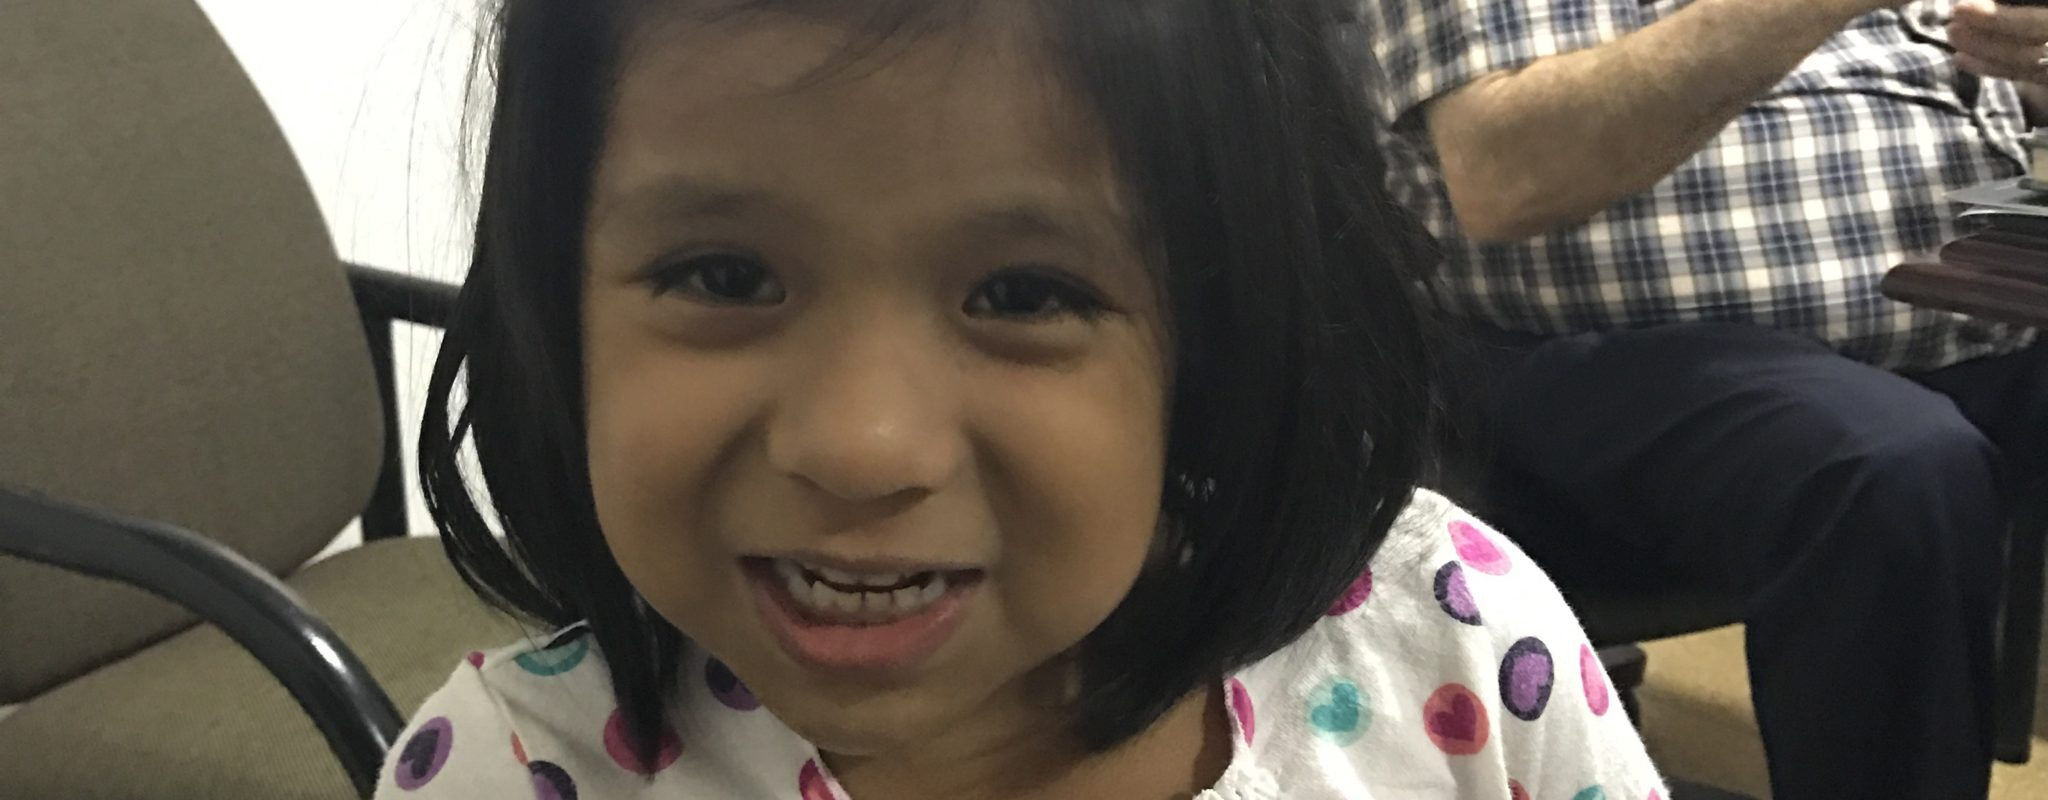 Nemours Solid Organ Transplant Team Saves Lives in Bolivia, Powered by Nemours Children's Health System